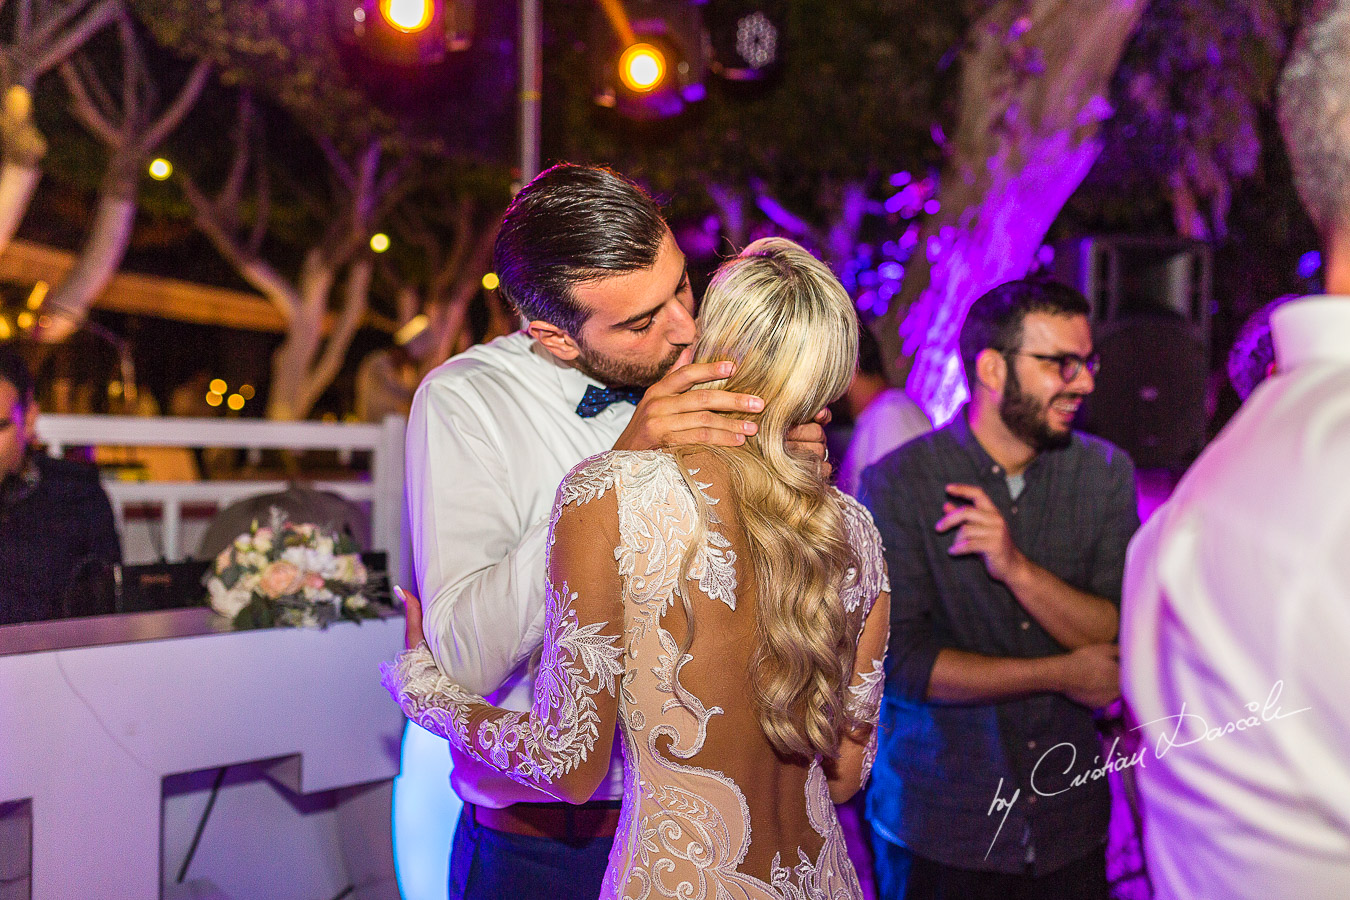 Moments captured during the first dance at an elegant and romantic wedding at Elias Beach Hotel by Cristian Dascalu.